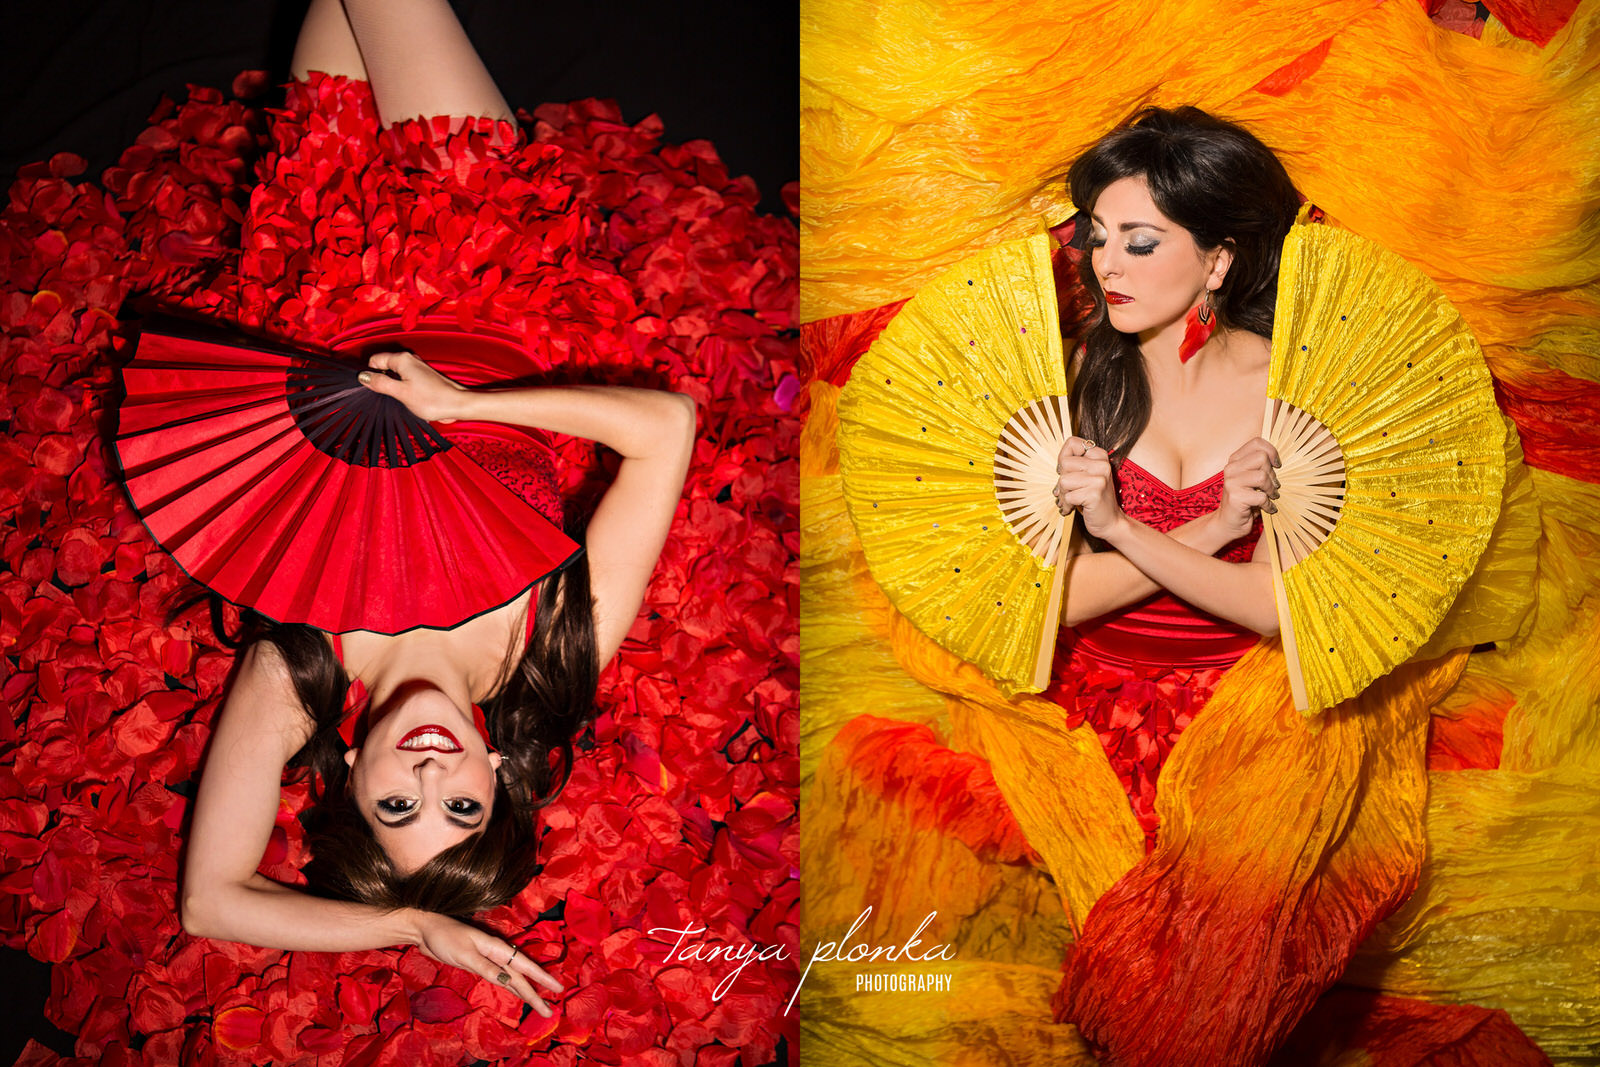 two images of woman laying in pile of rose petal and in yellow silks